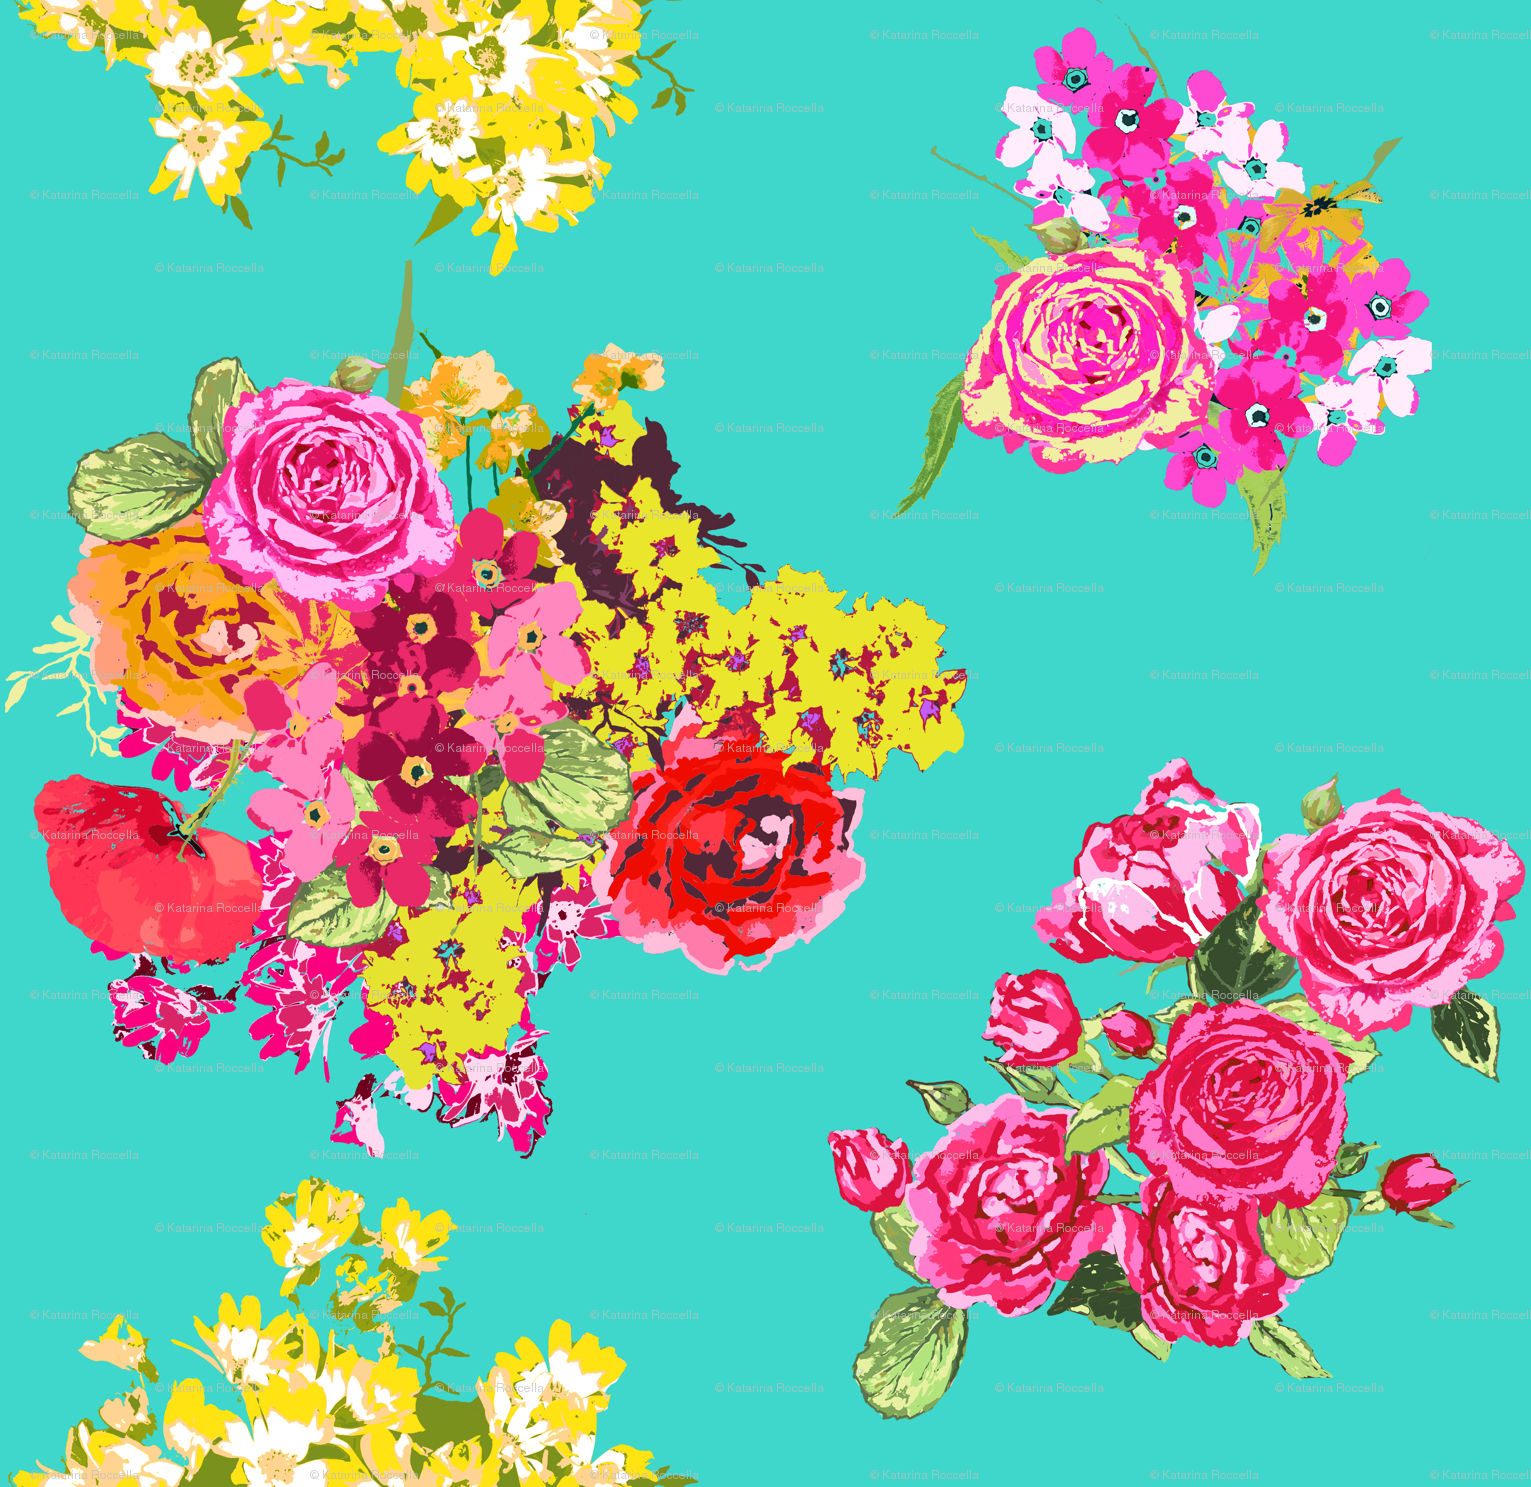 Free Download Displaying 20 Images For 1960s Flower Wallpaper